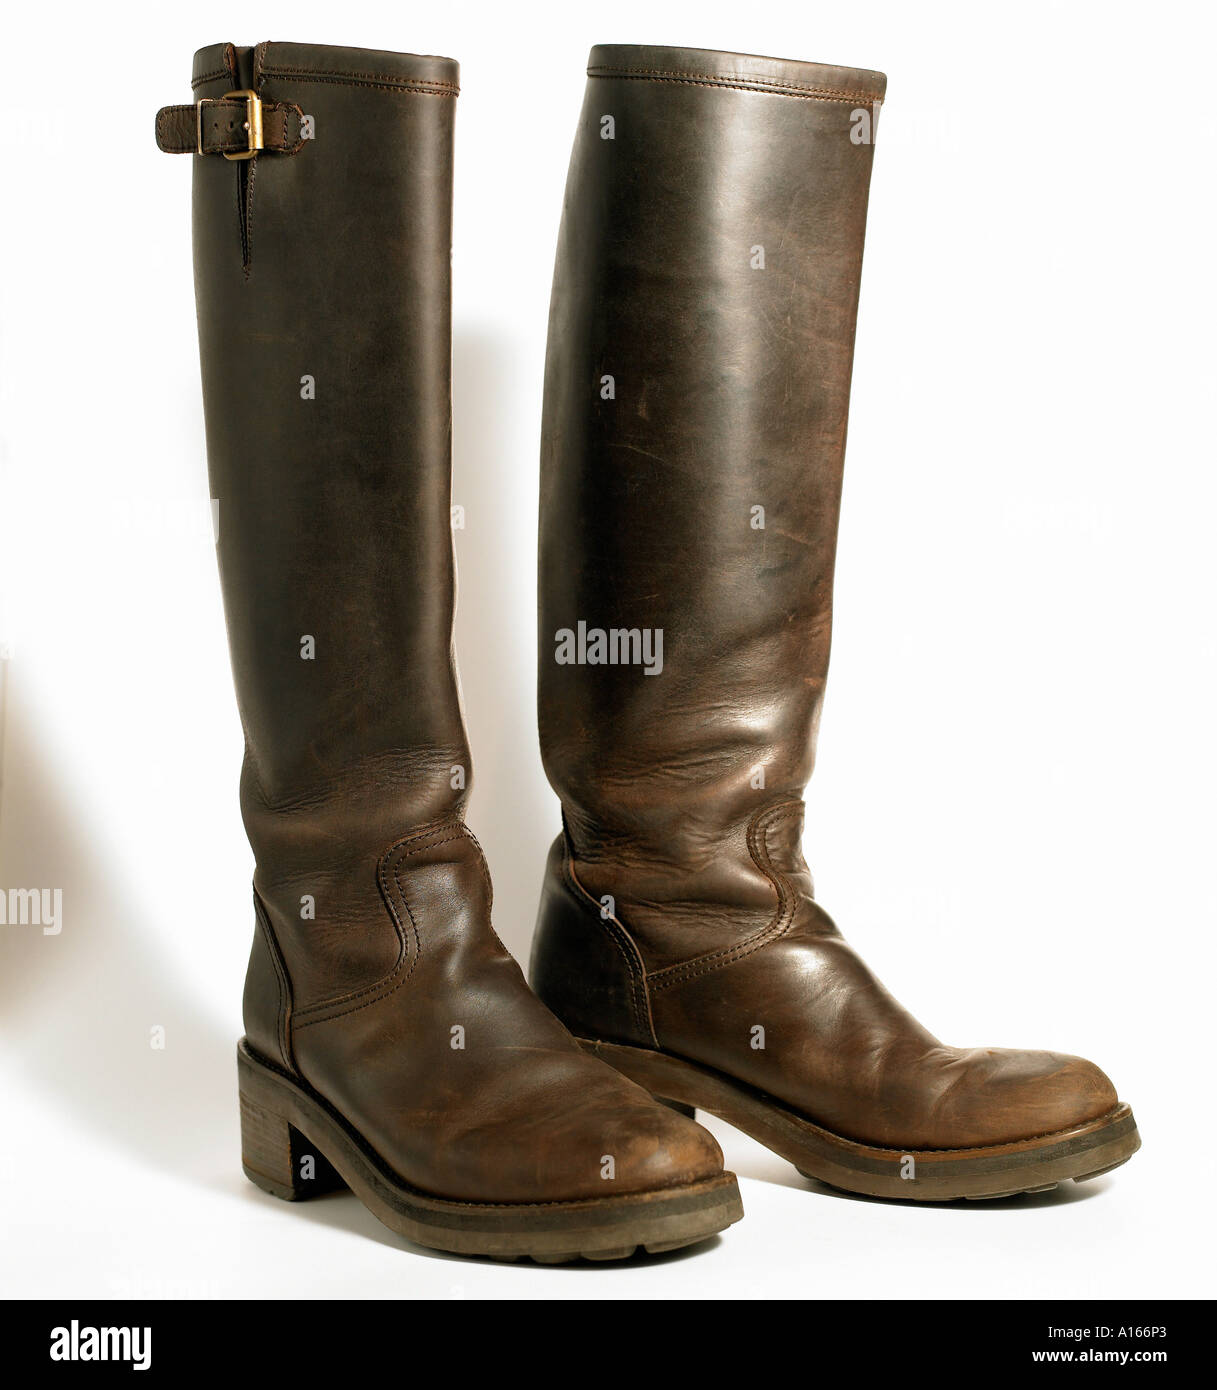 Boot - Stock Image